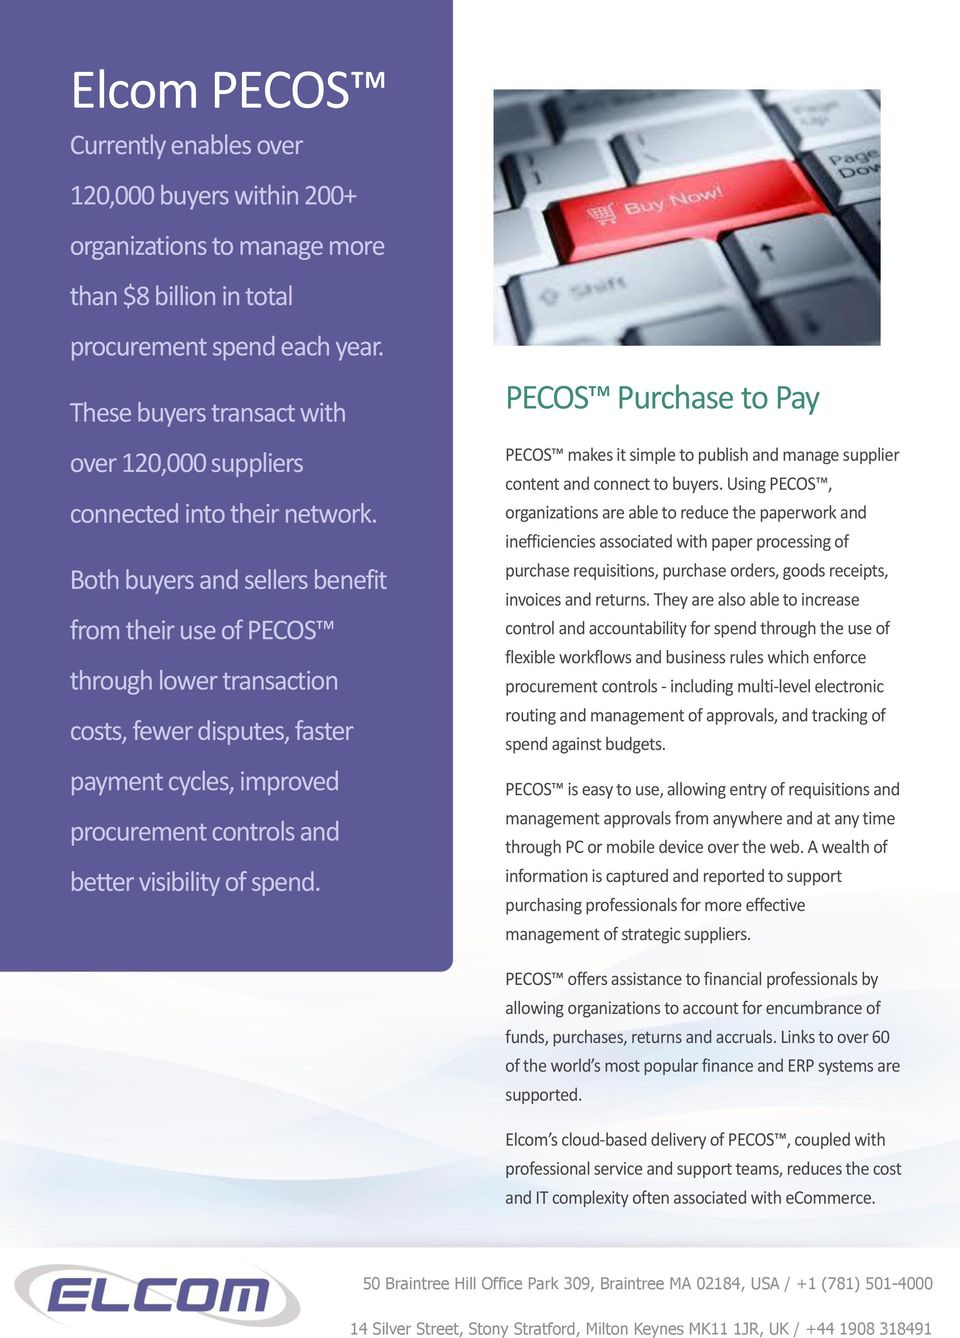 Both buyers and sellers benefit from their use of PECOS through lower transaction costs, fewer disputes, faster payment cycles, improved procurement controls and better visibility of spend.